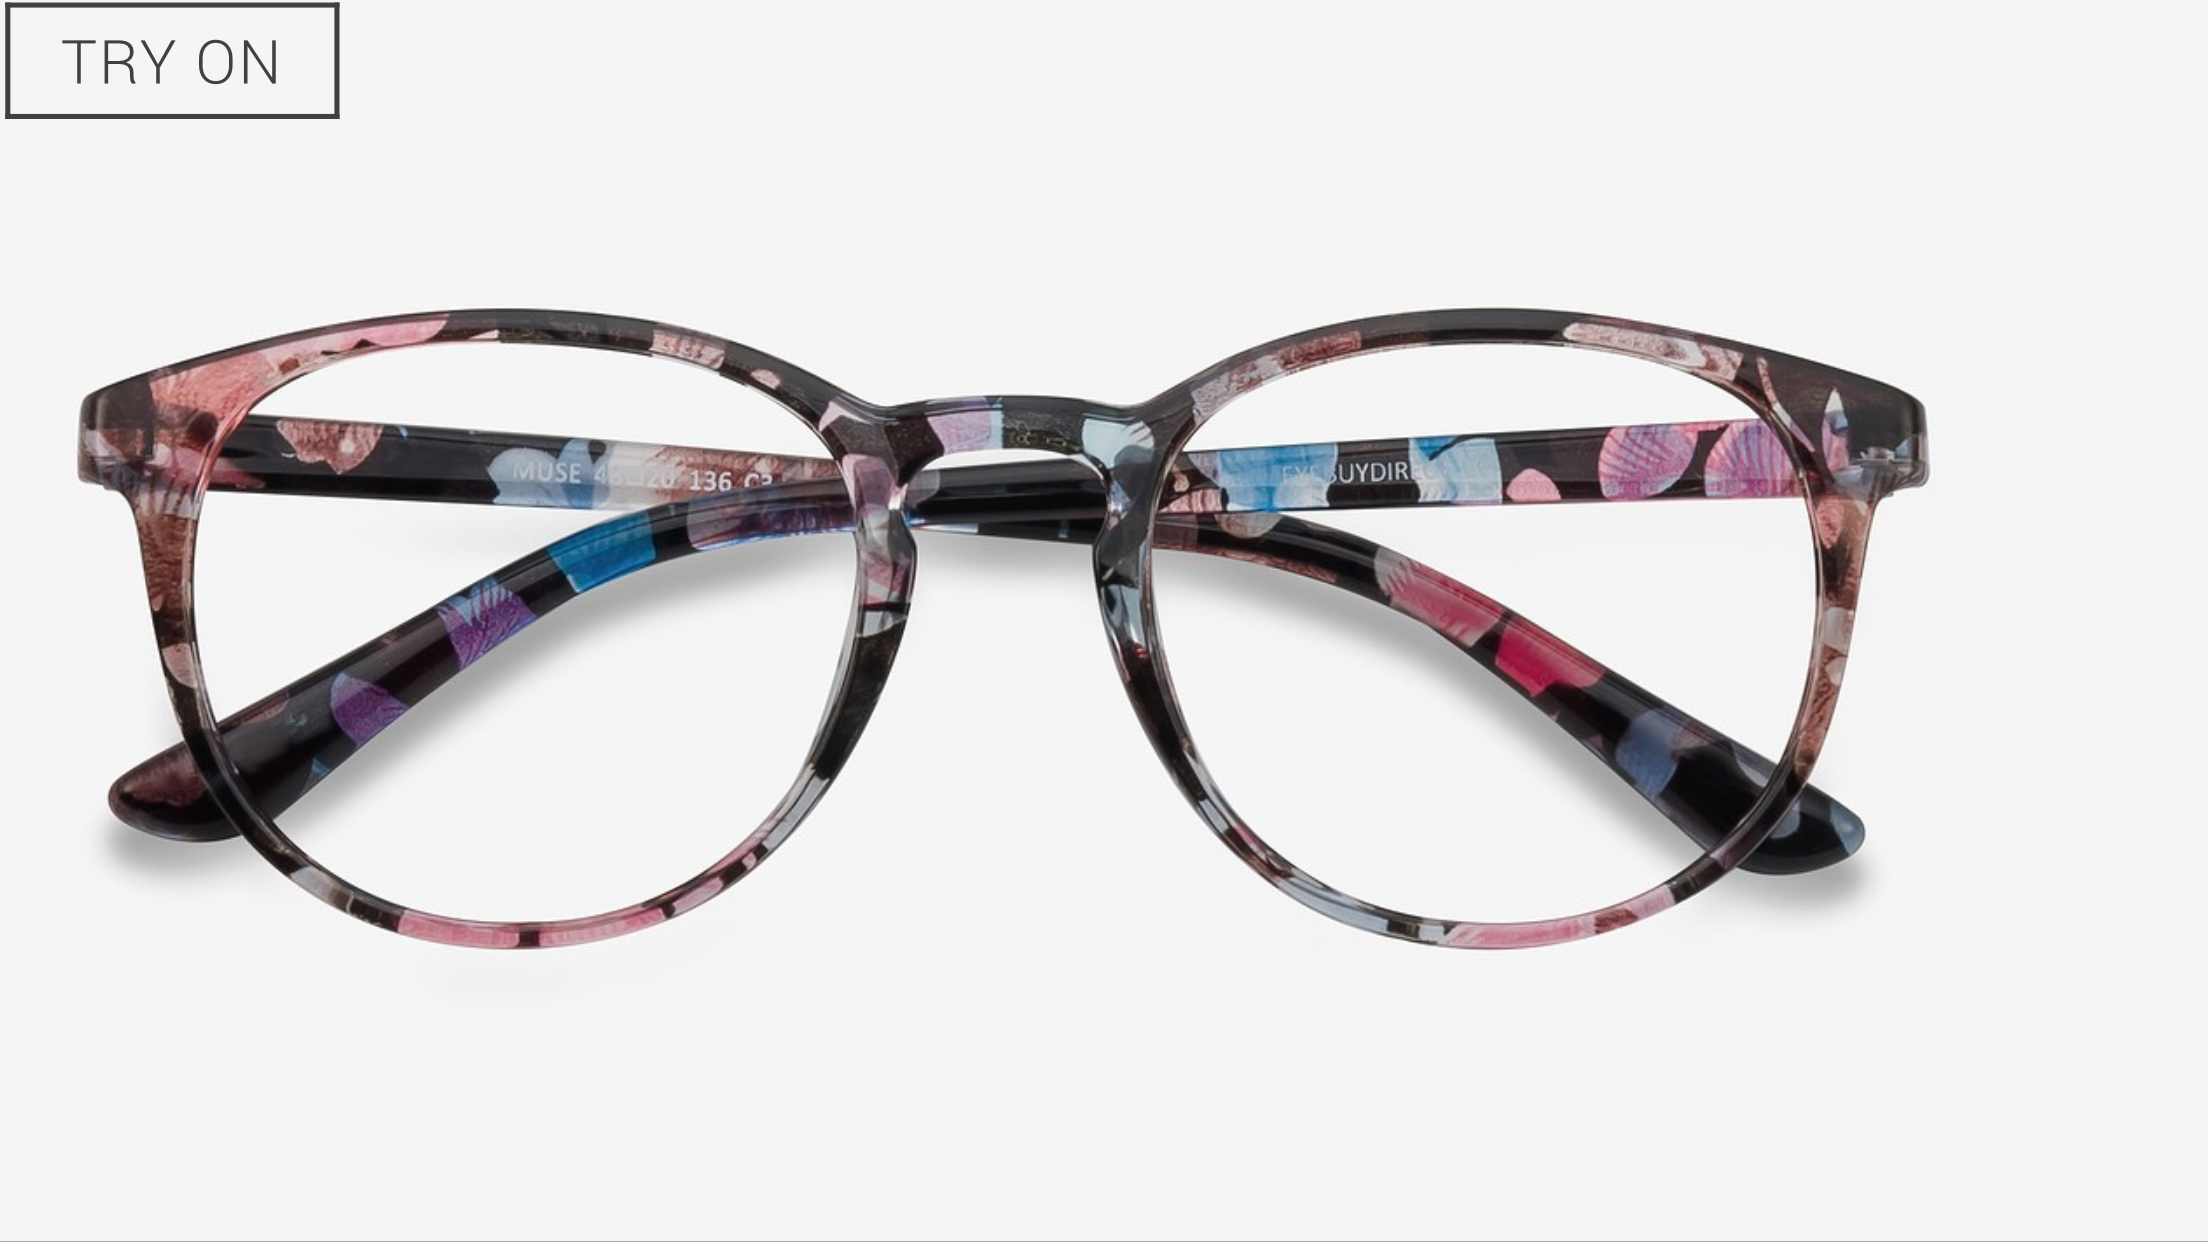 bd1f2d3cd9a1 Pin by Veronica Huckaby on Fashion in 2019 | Fashion eye glasses ...